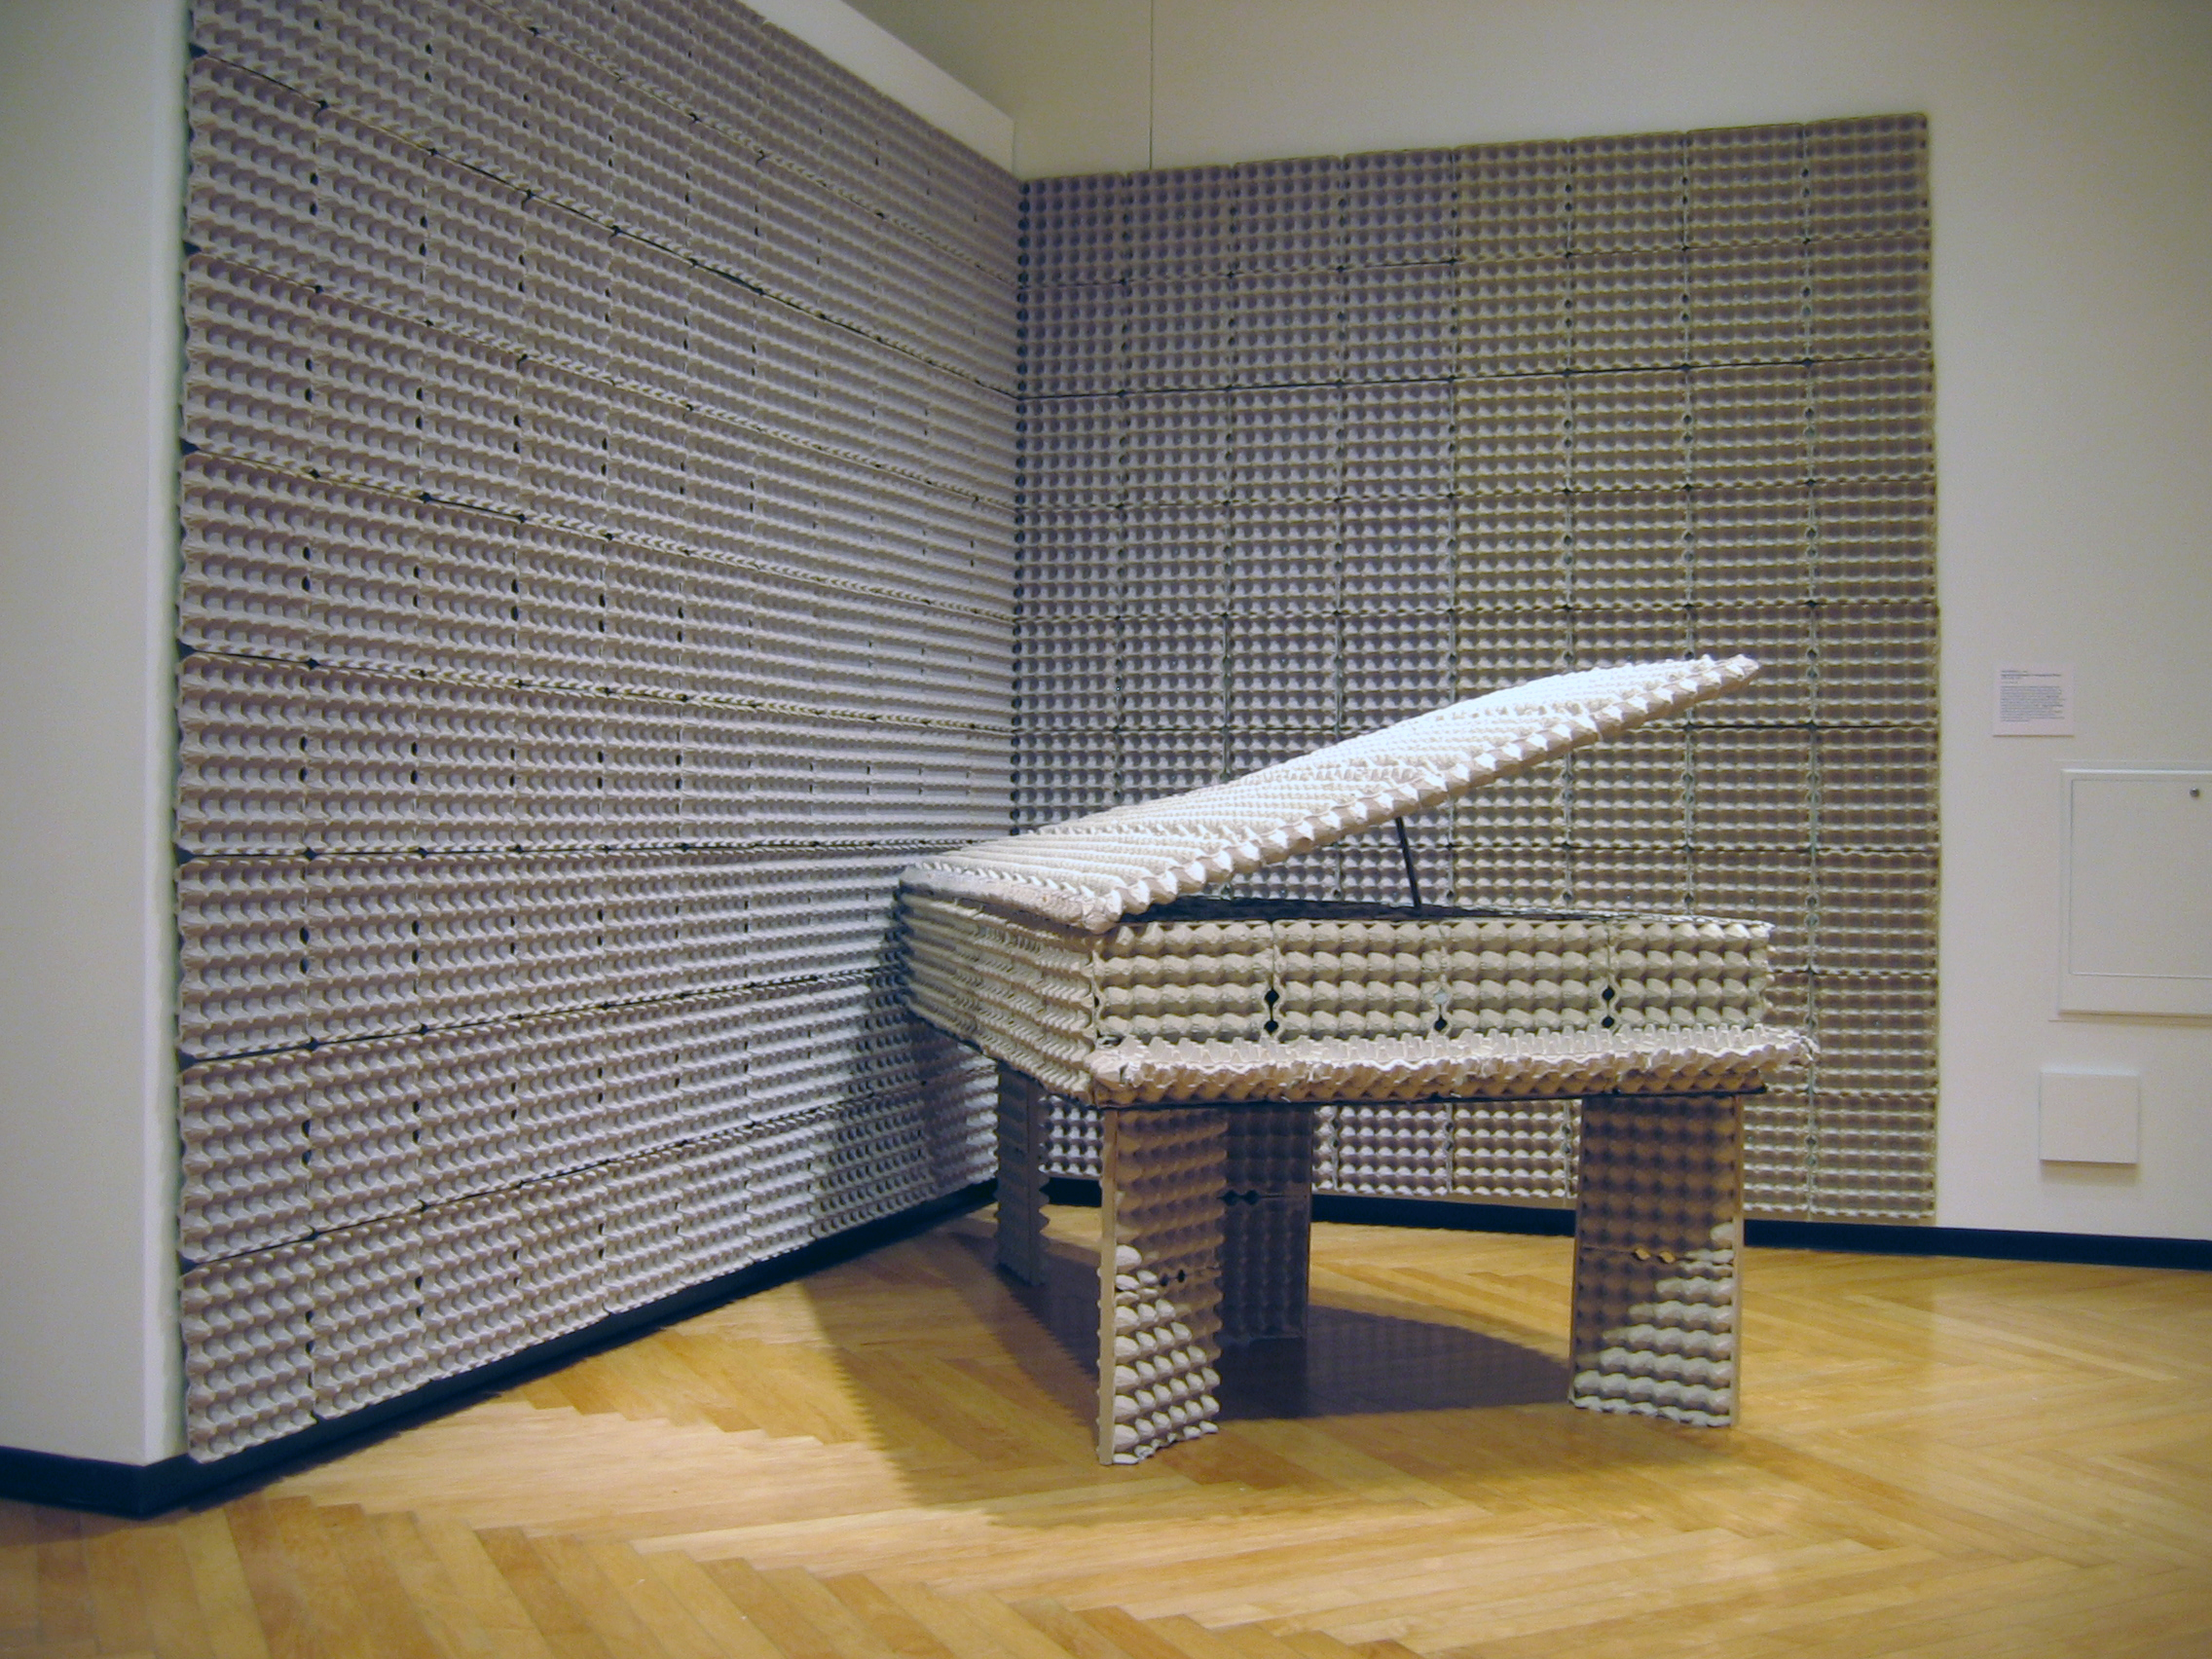 """'Egg Crate Grand: A Soundproof Piano' , 2004, 57 x 50 x 90(with top open). The grand piano-sized assemblage is constructed solely from egg crates found on the street by the Broken Egg restaurant in Ann Arbor near where the artist lived while teaching at the University of Michigan in 2003-04. Here the shape of the piano as an evocative sculptural form is referenced, in addition to the grassroots use of egg cartons as soundproofing in home recording studios of years past. It becomes a silent, highly absorbent, soundproof piano - the perfect instrument for a performance of John Cage's """"silent"""" work 4'33""""."""